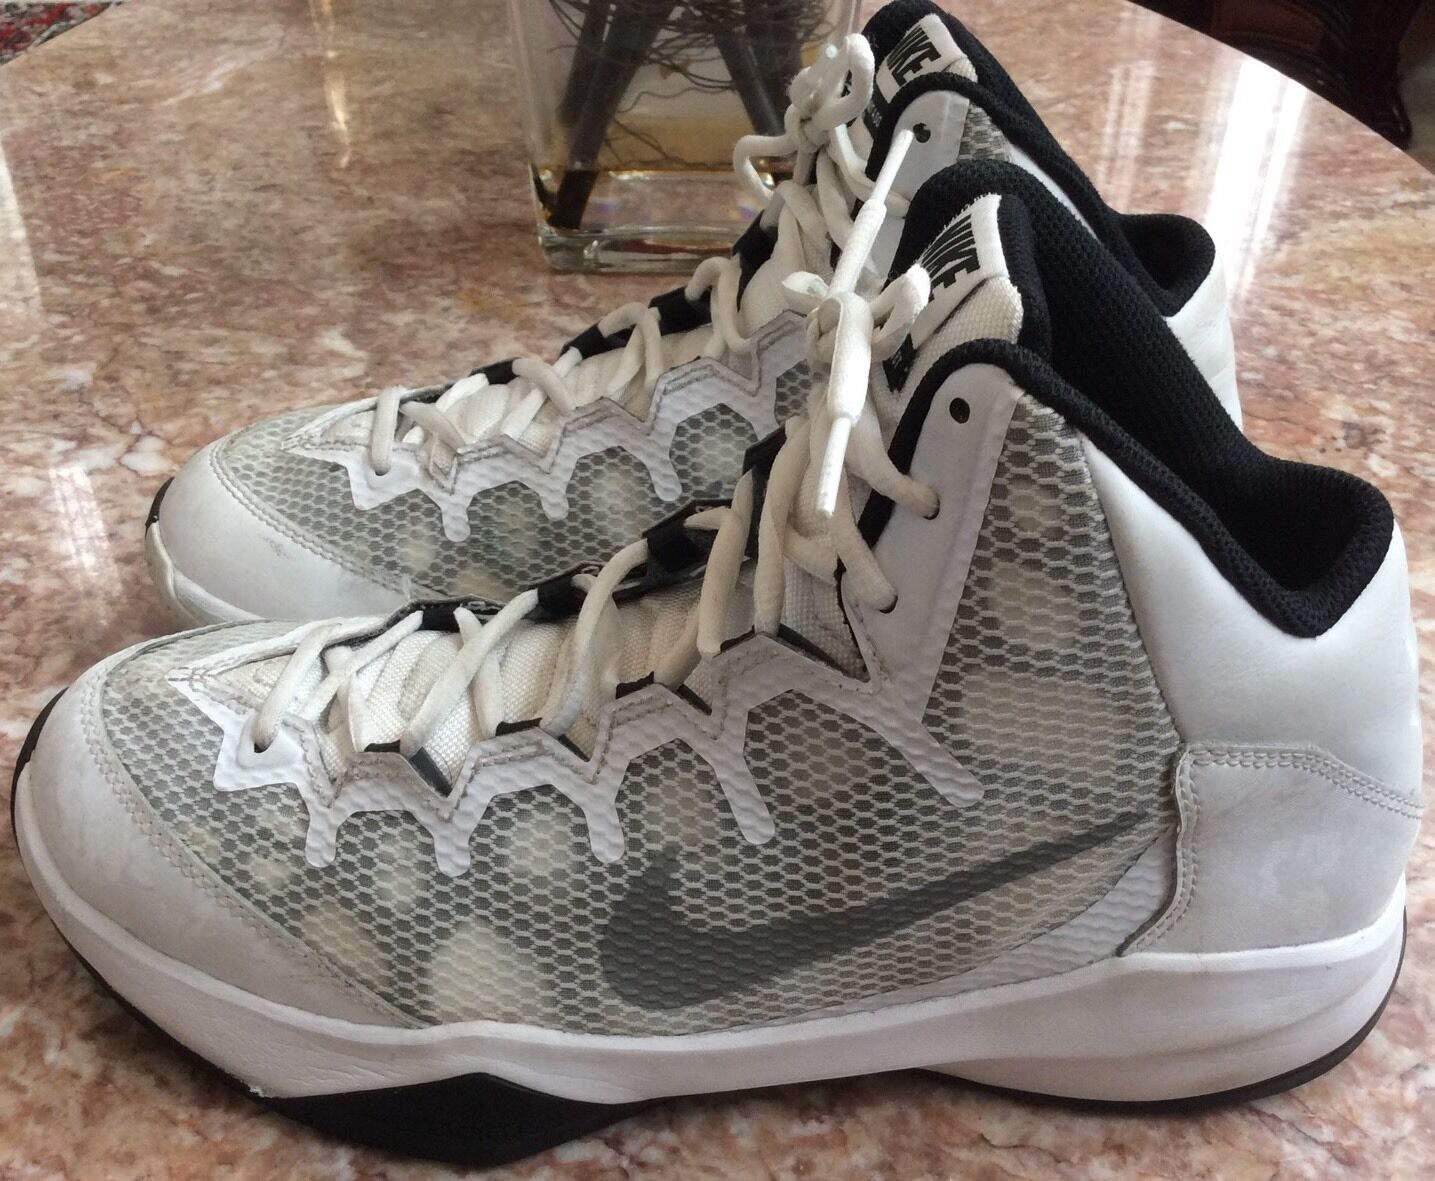 Nike Zoom Men's White/Gray/Black Sneakers Comfortable Wild casual shoes